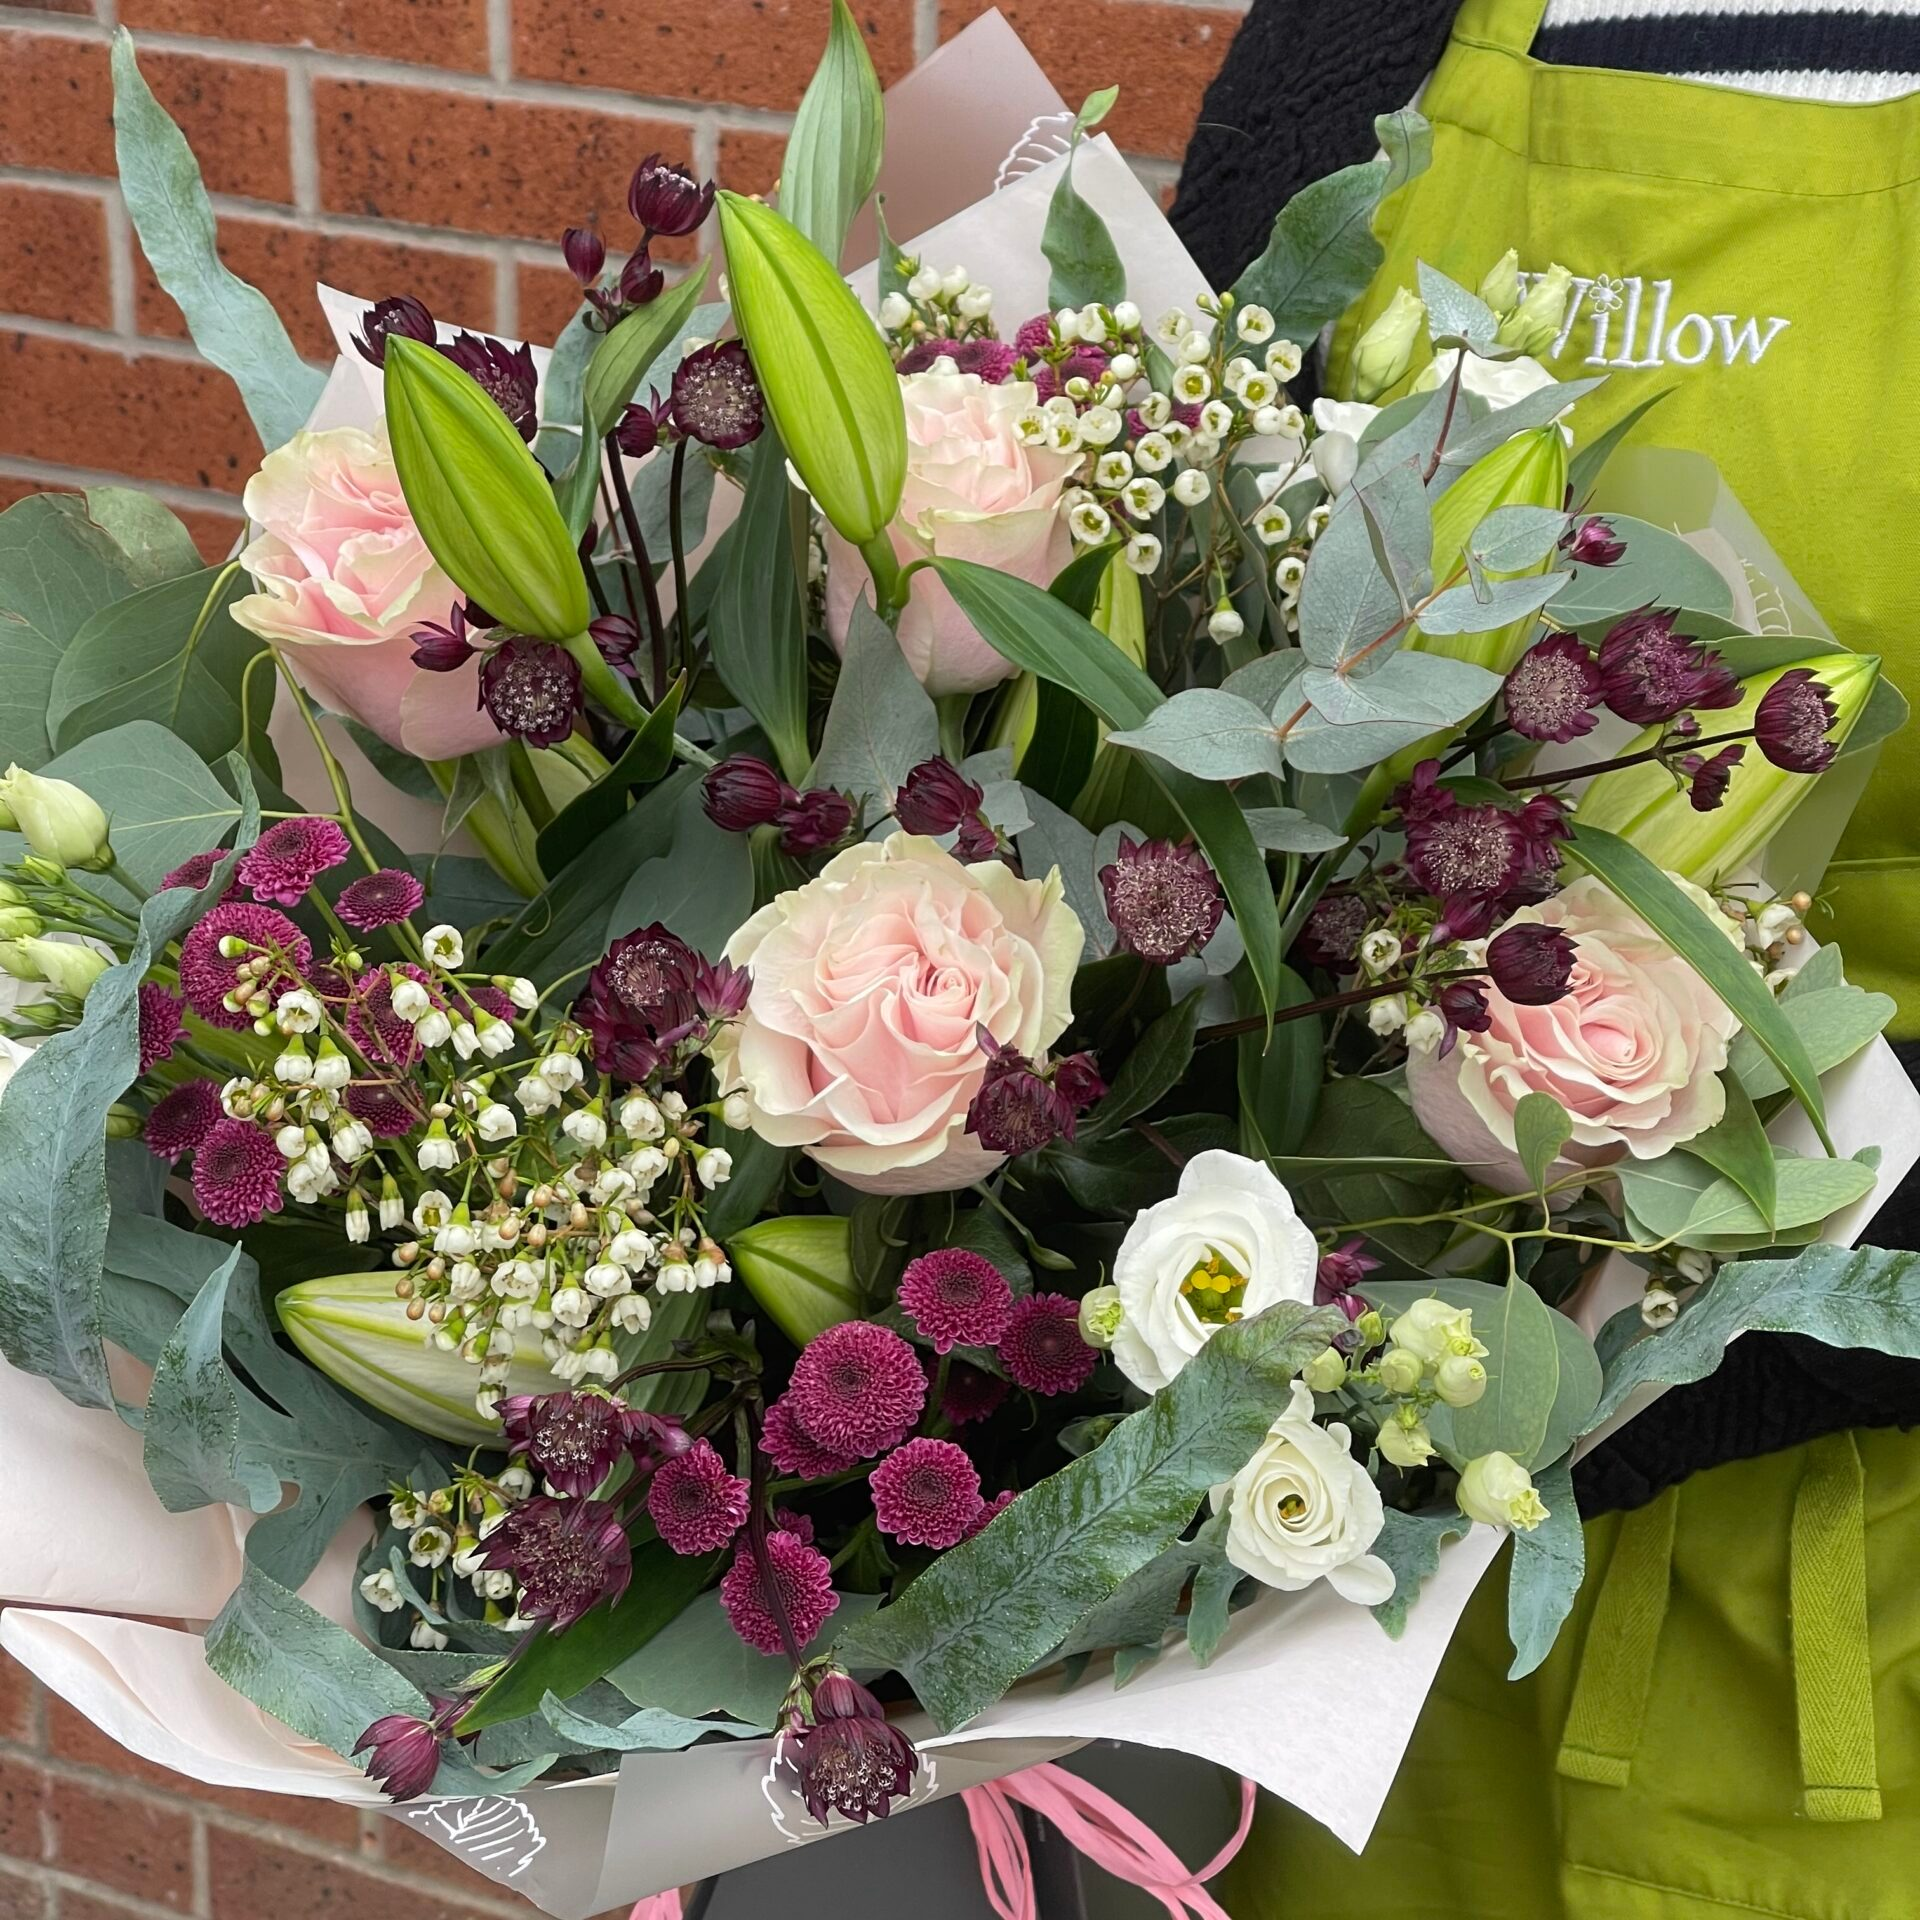 In this image, someone is wearing a green apron and is holding what they call their 'Vintage Bouquet'. This consists of light pink, white, deep purple flowers with some green foliage.